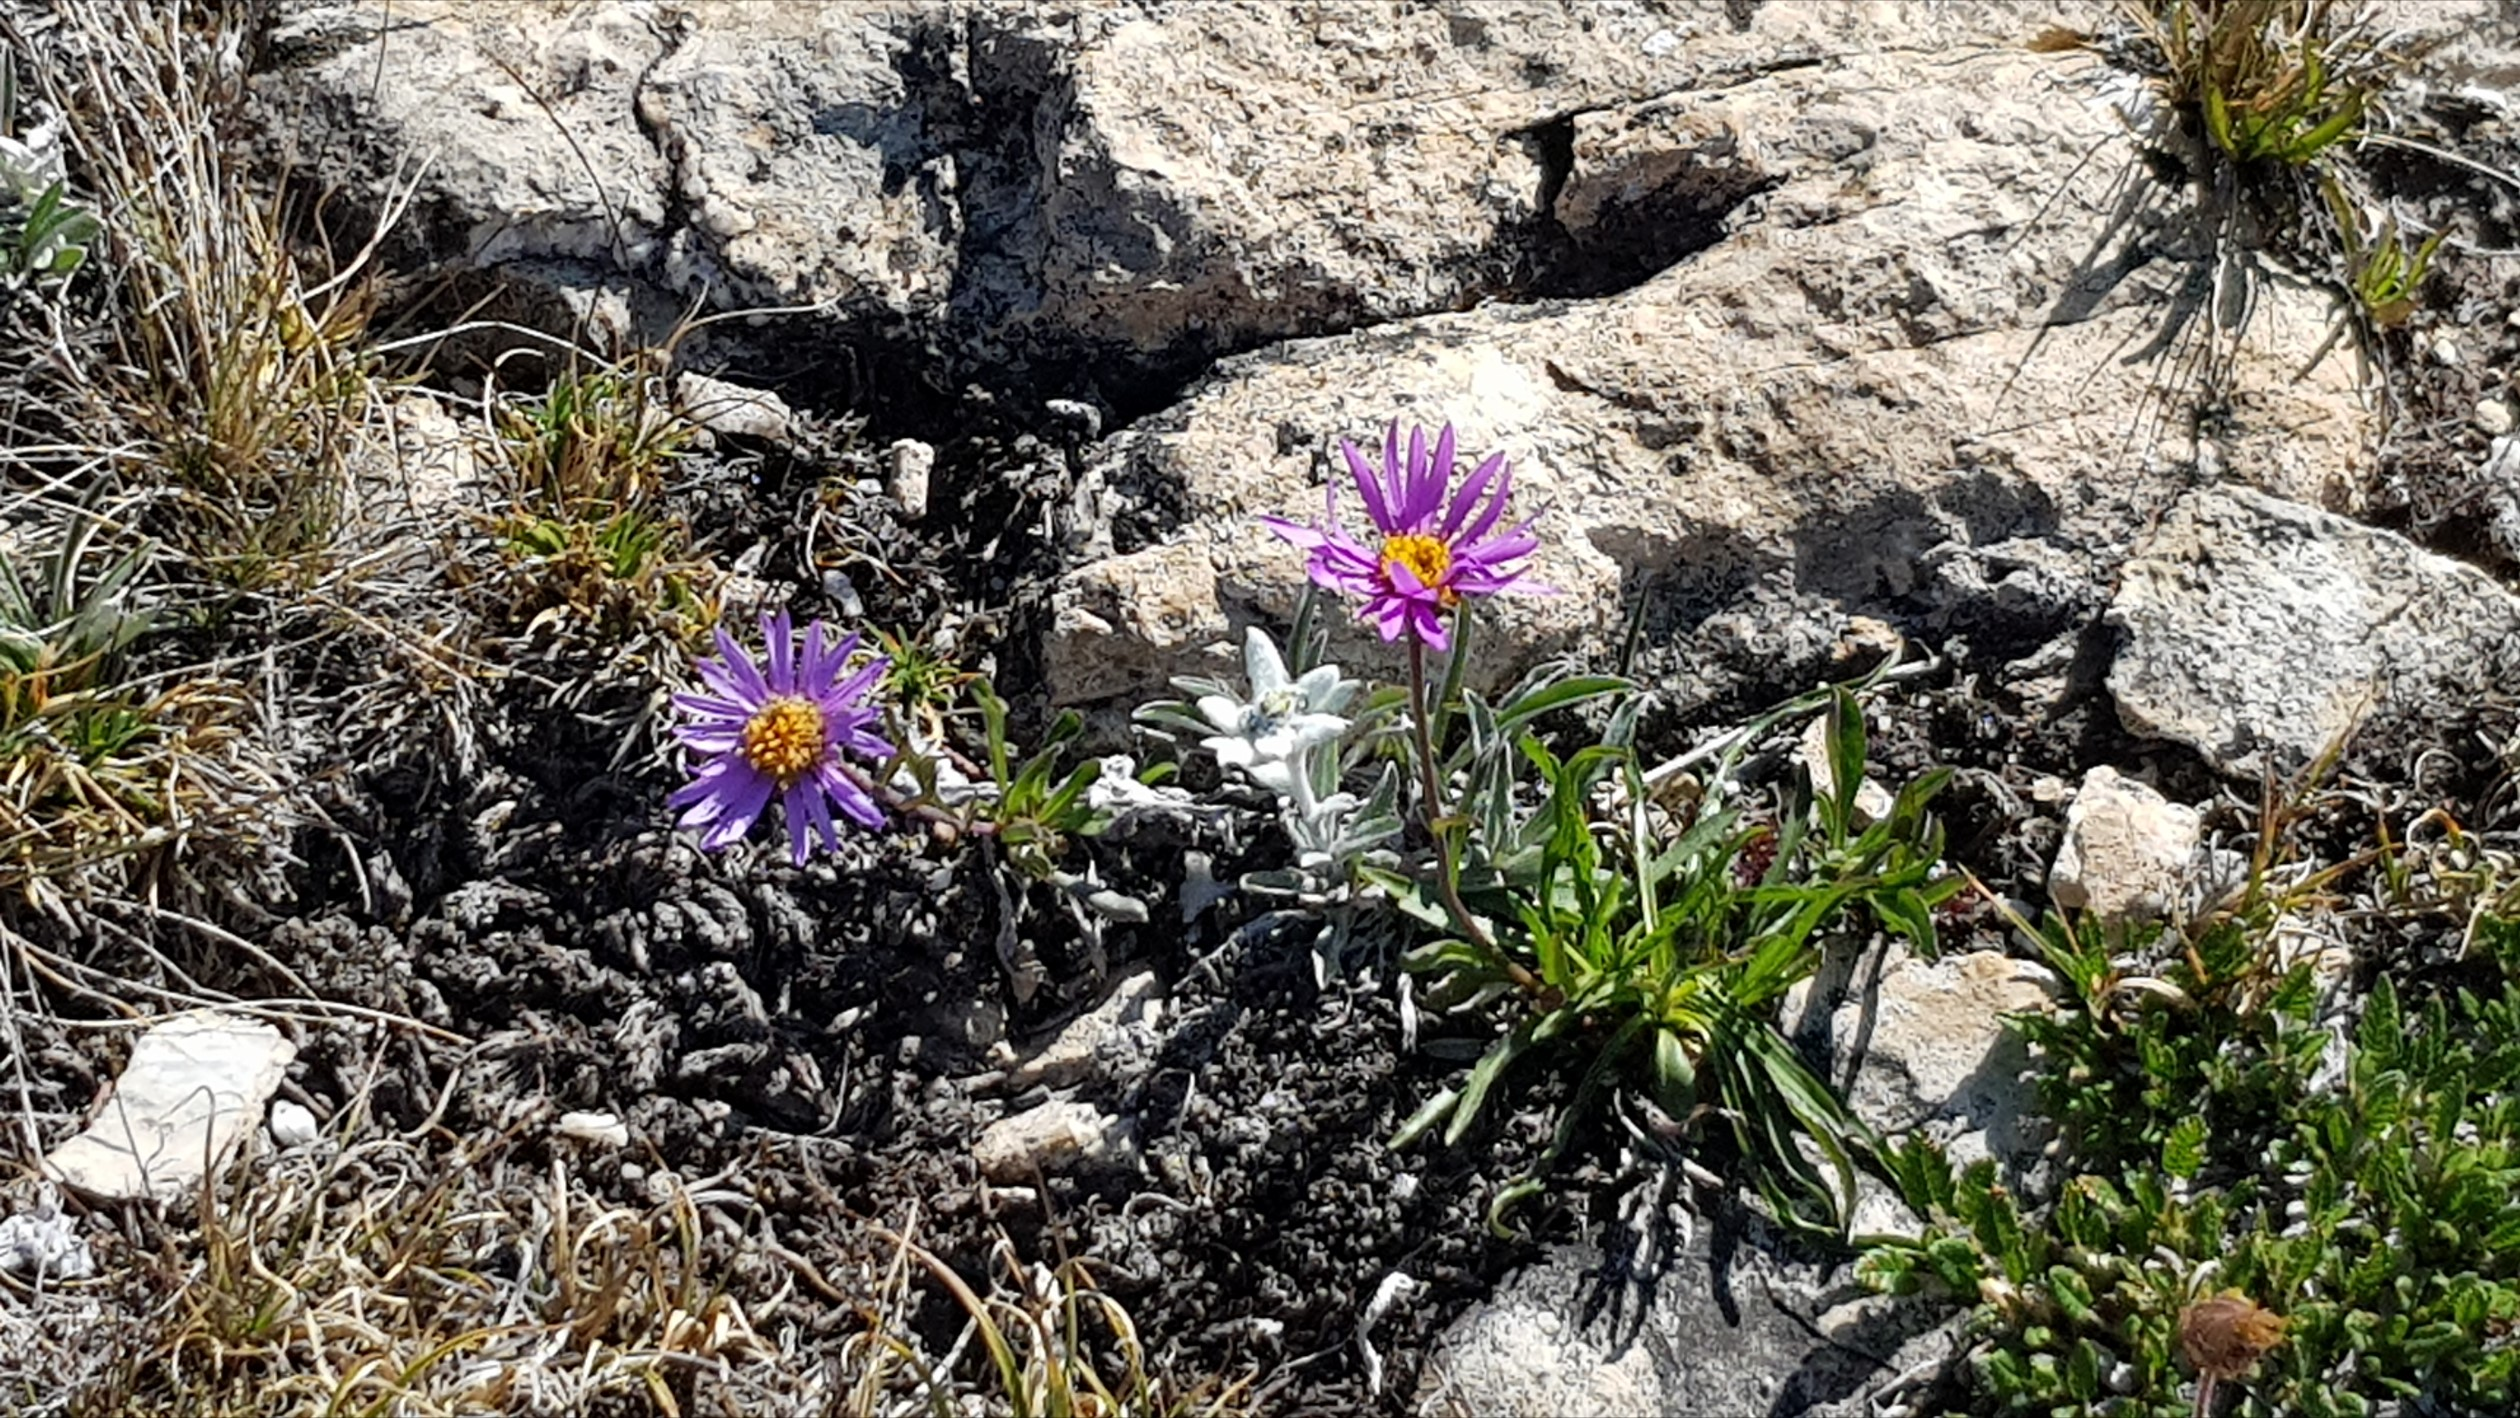 Engadine, Val Fex, Flowers and Edelweiss